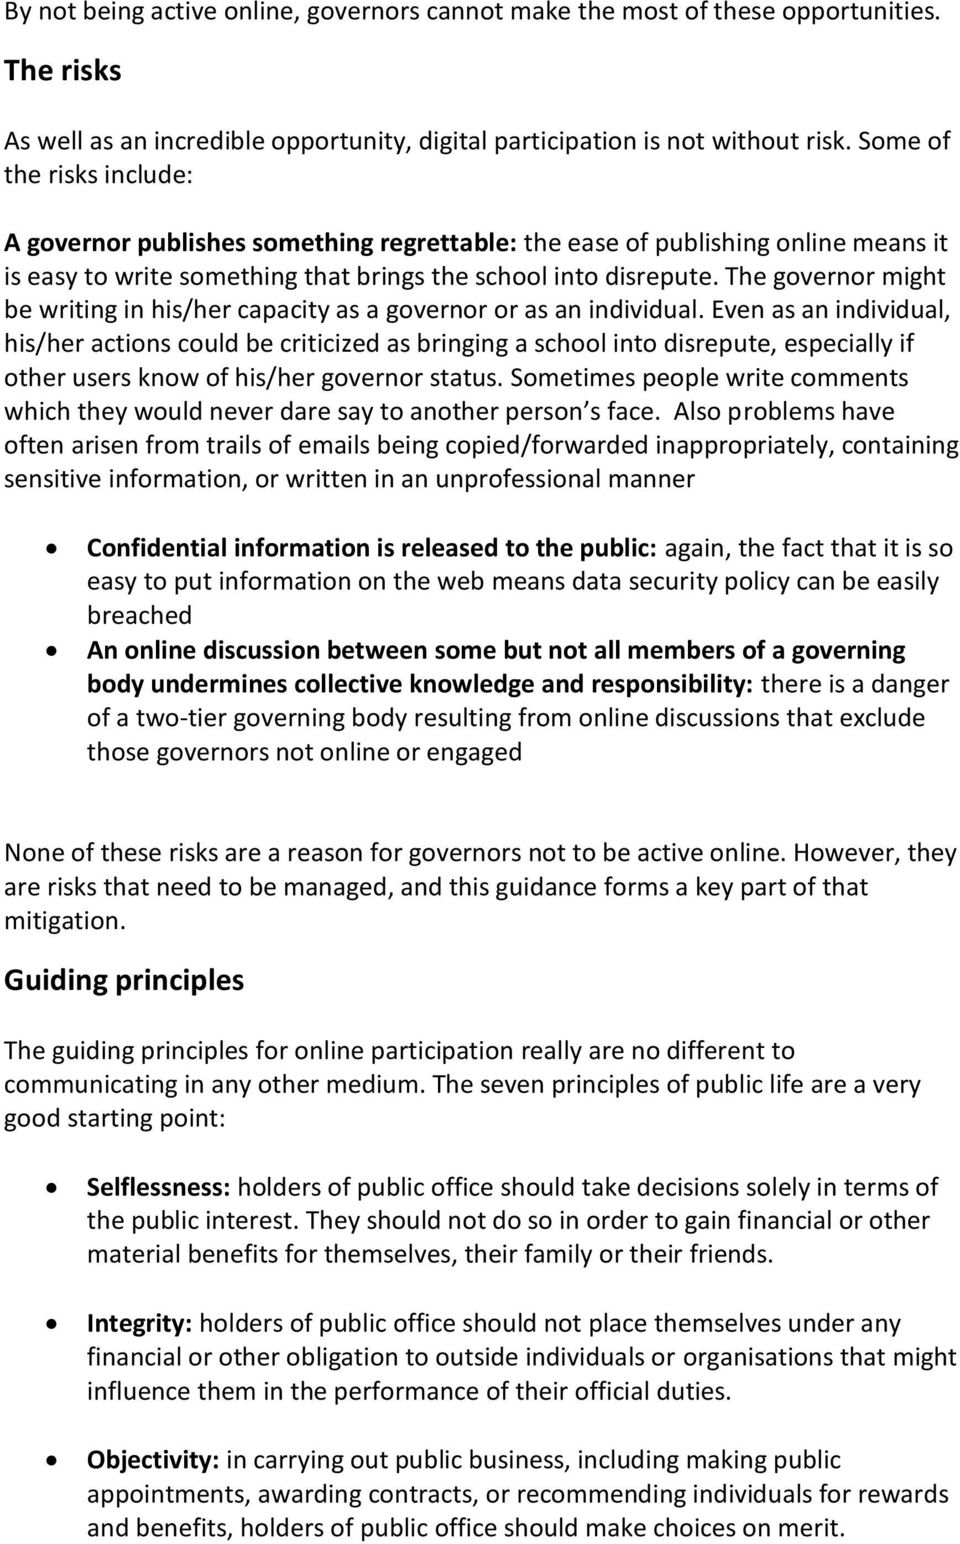 Online participation: Guidance for school governors - PDF